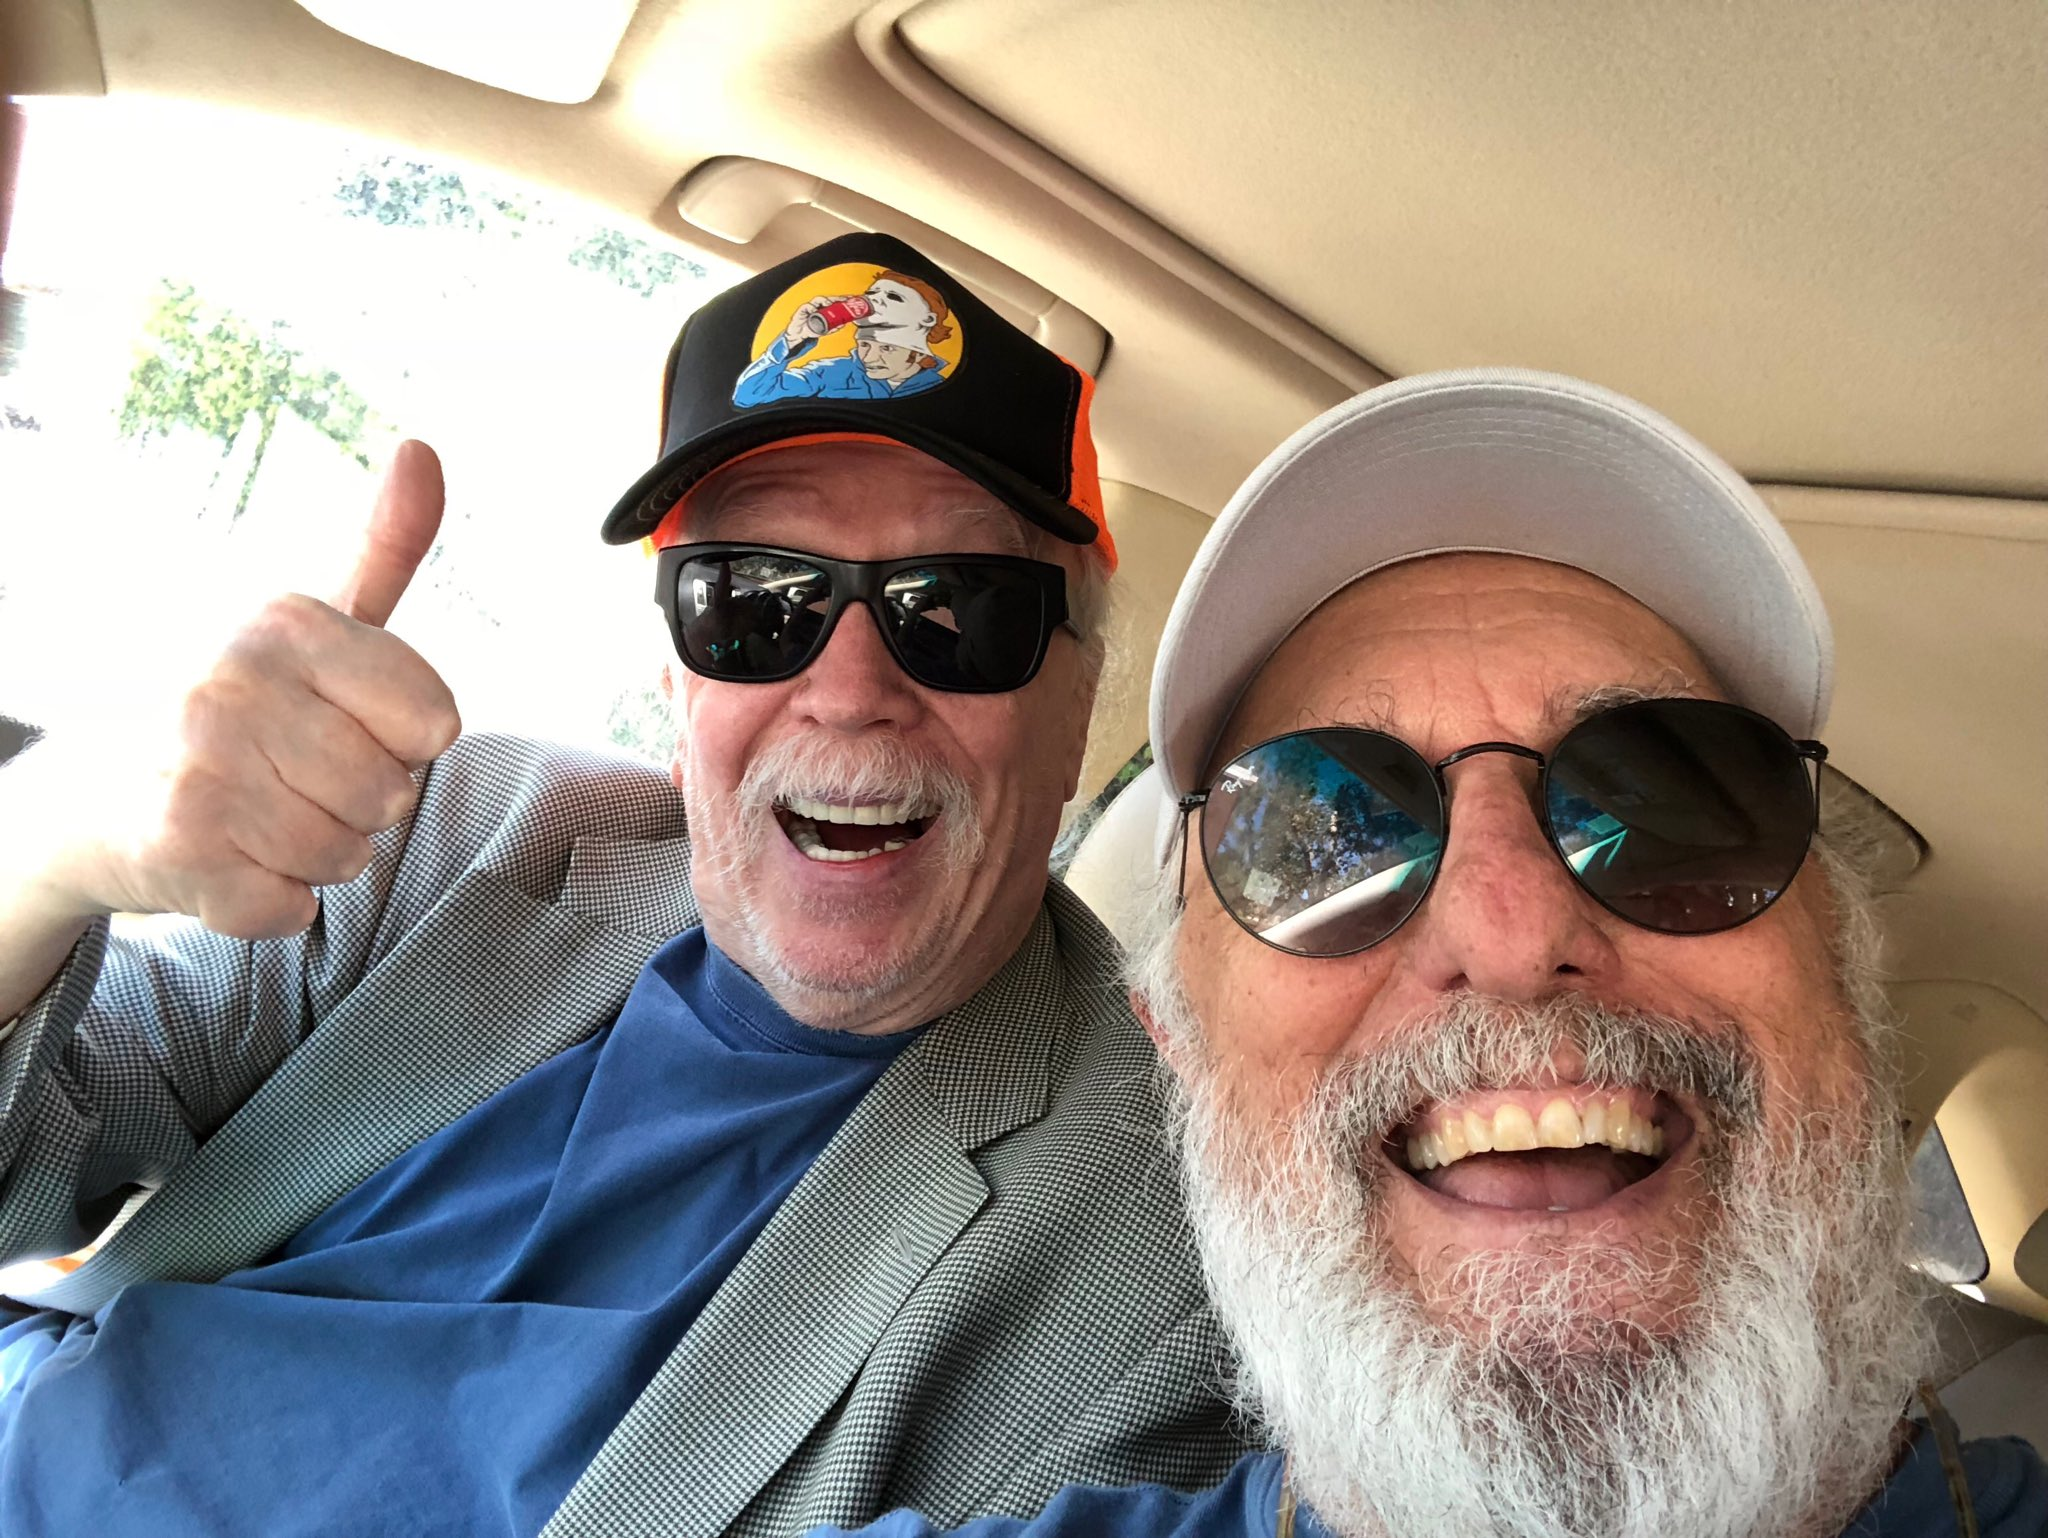 After lunch at Musso's with the Horror Master, he sends a big thumbs up to the fans.  The film's in last stage of mixing and looking great. https://t.co/q01qG8wrFN